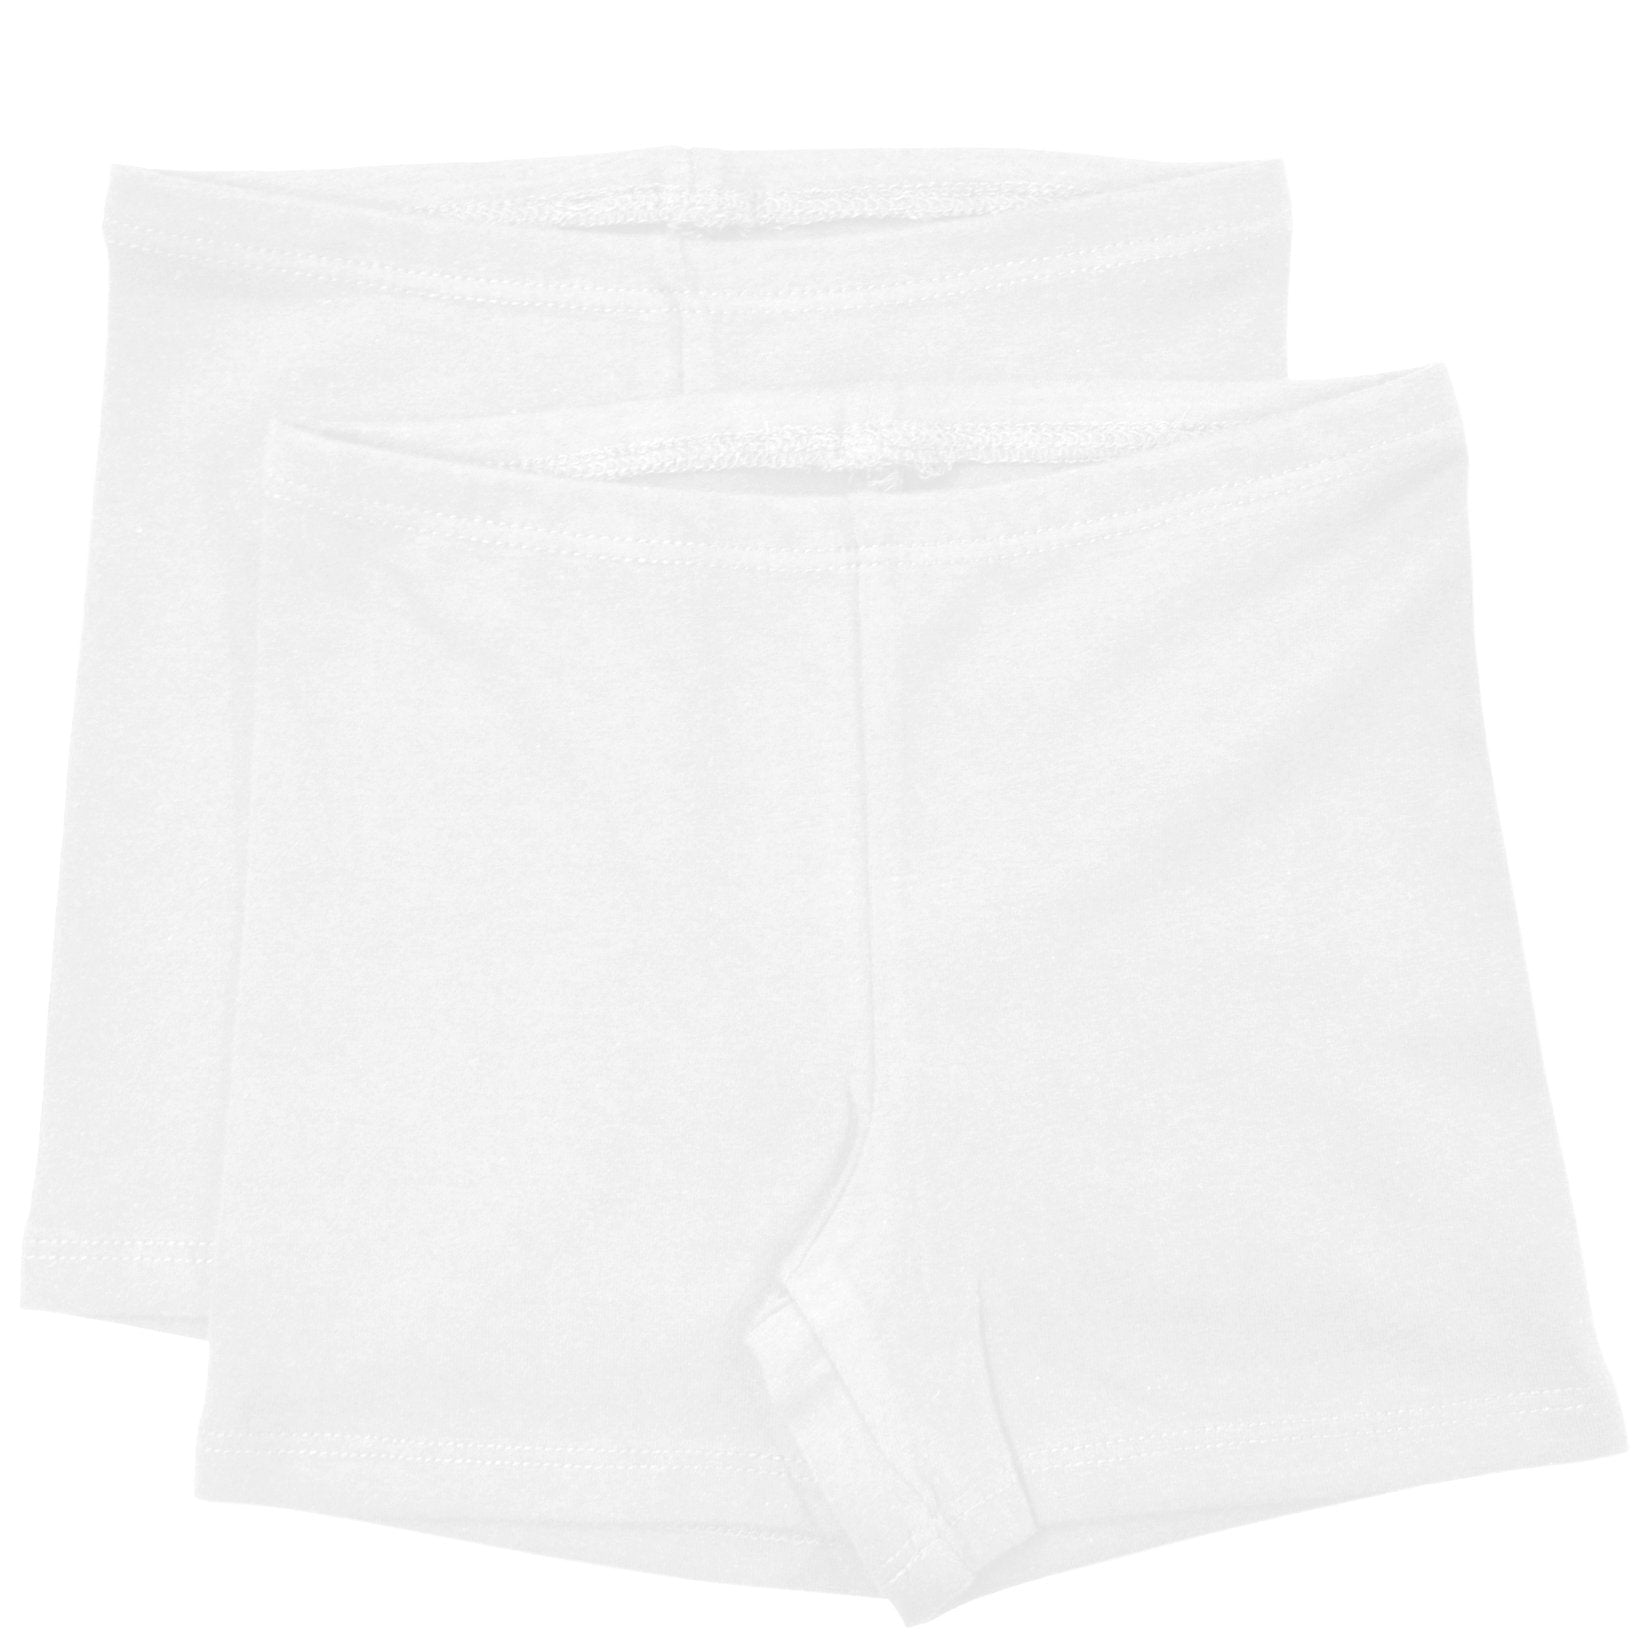 Girl's Infant Cotton Biker Shorts Pack Of 2